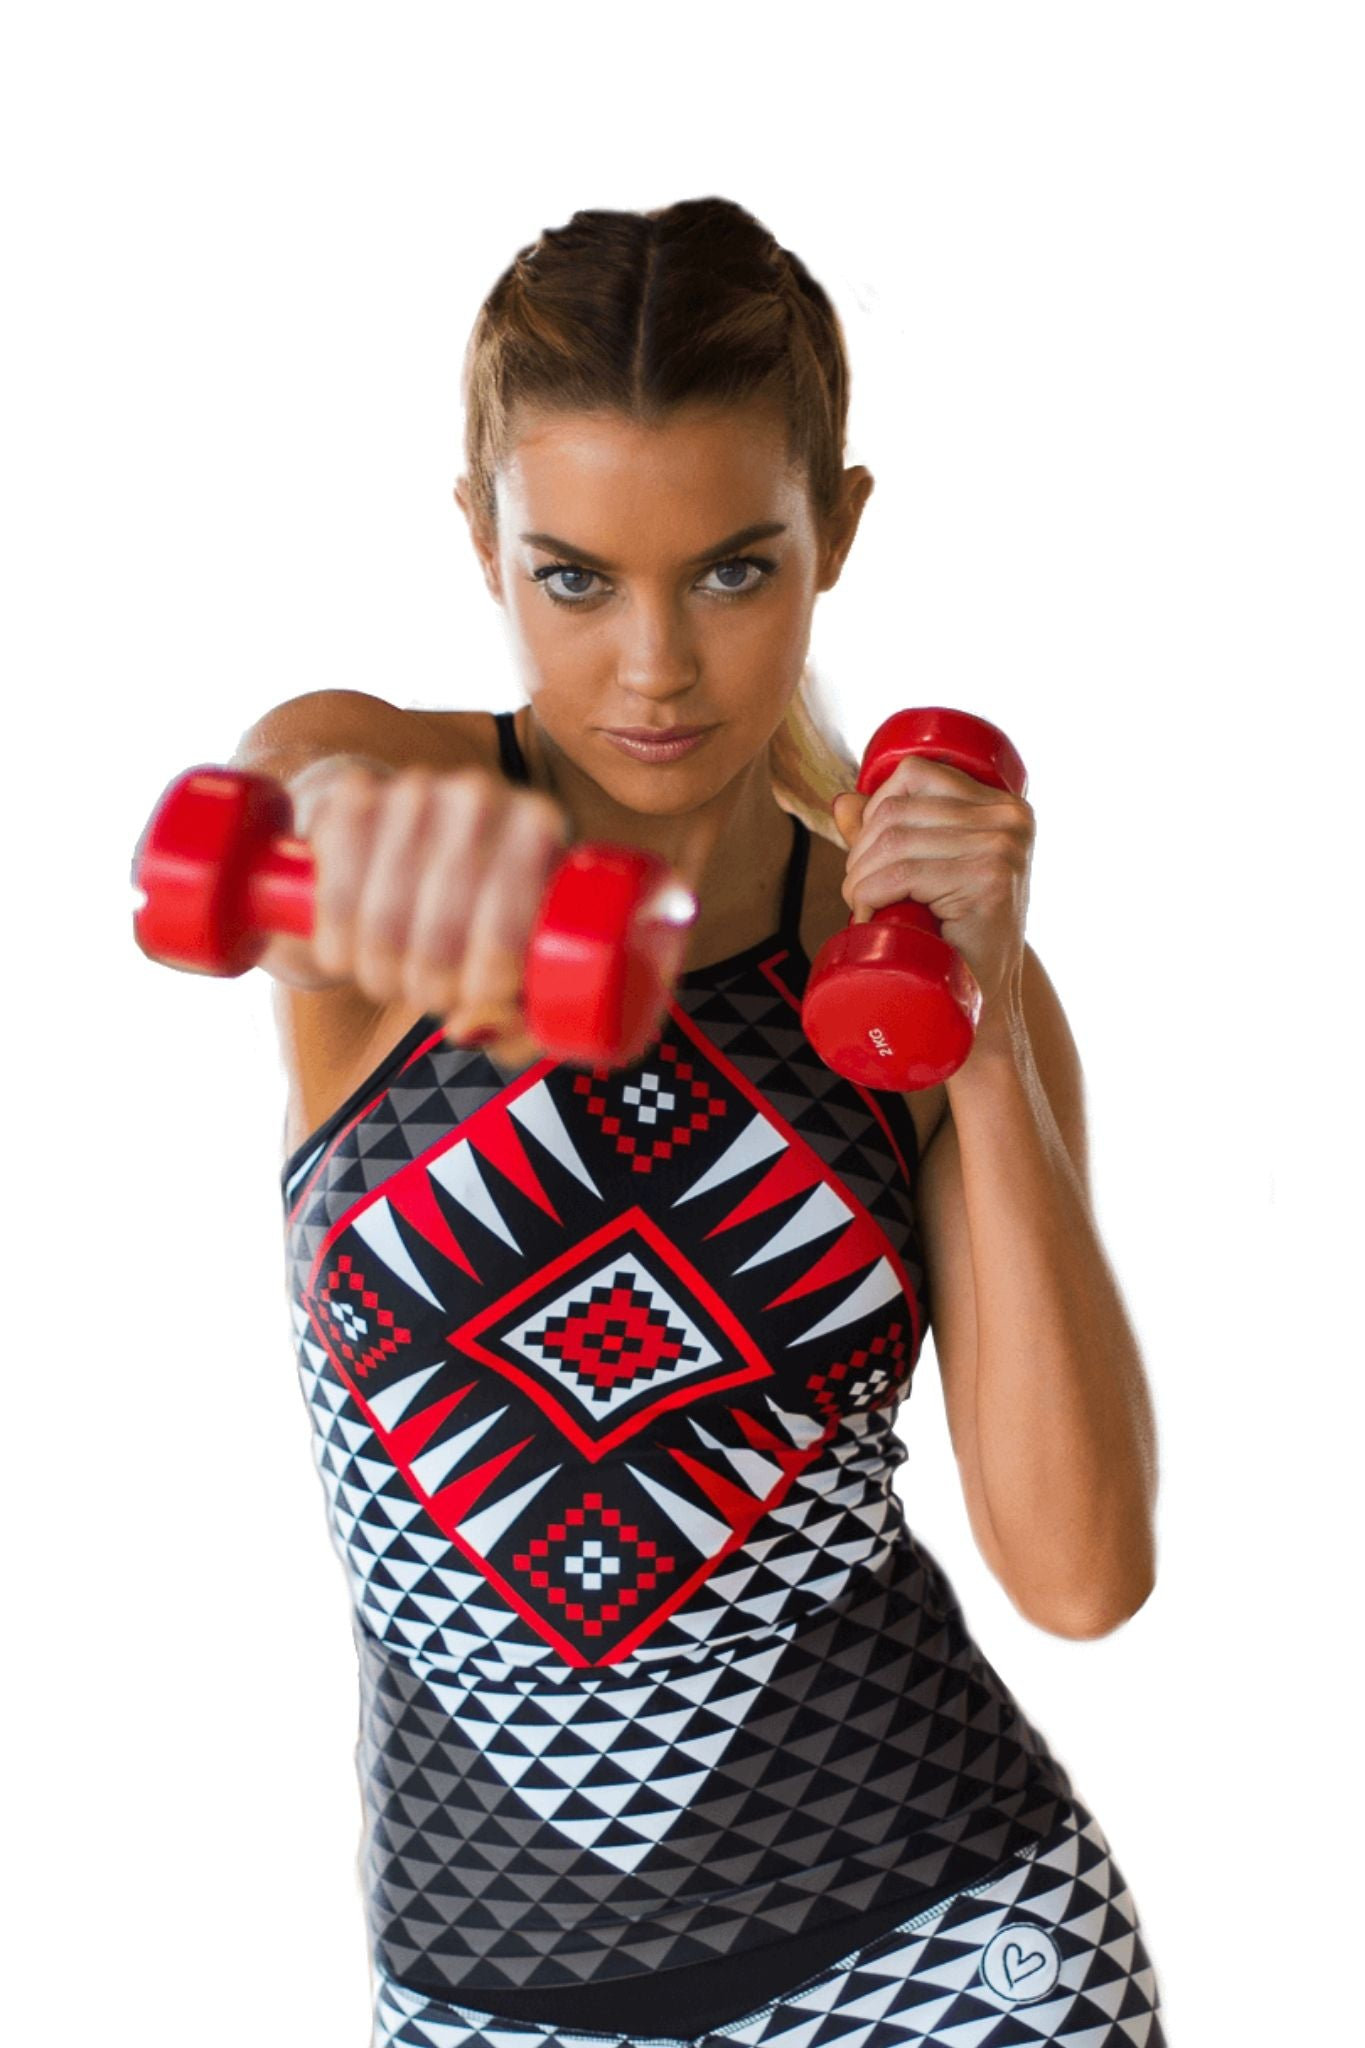 Aztec workout shirt with inner top - BarbellPrincessUsa